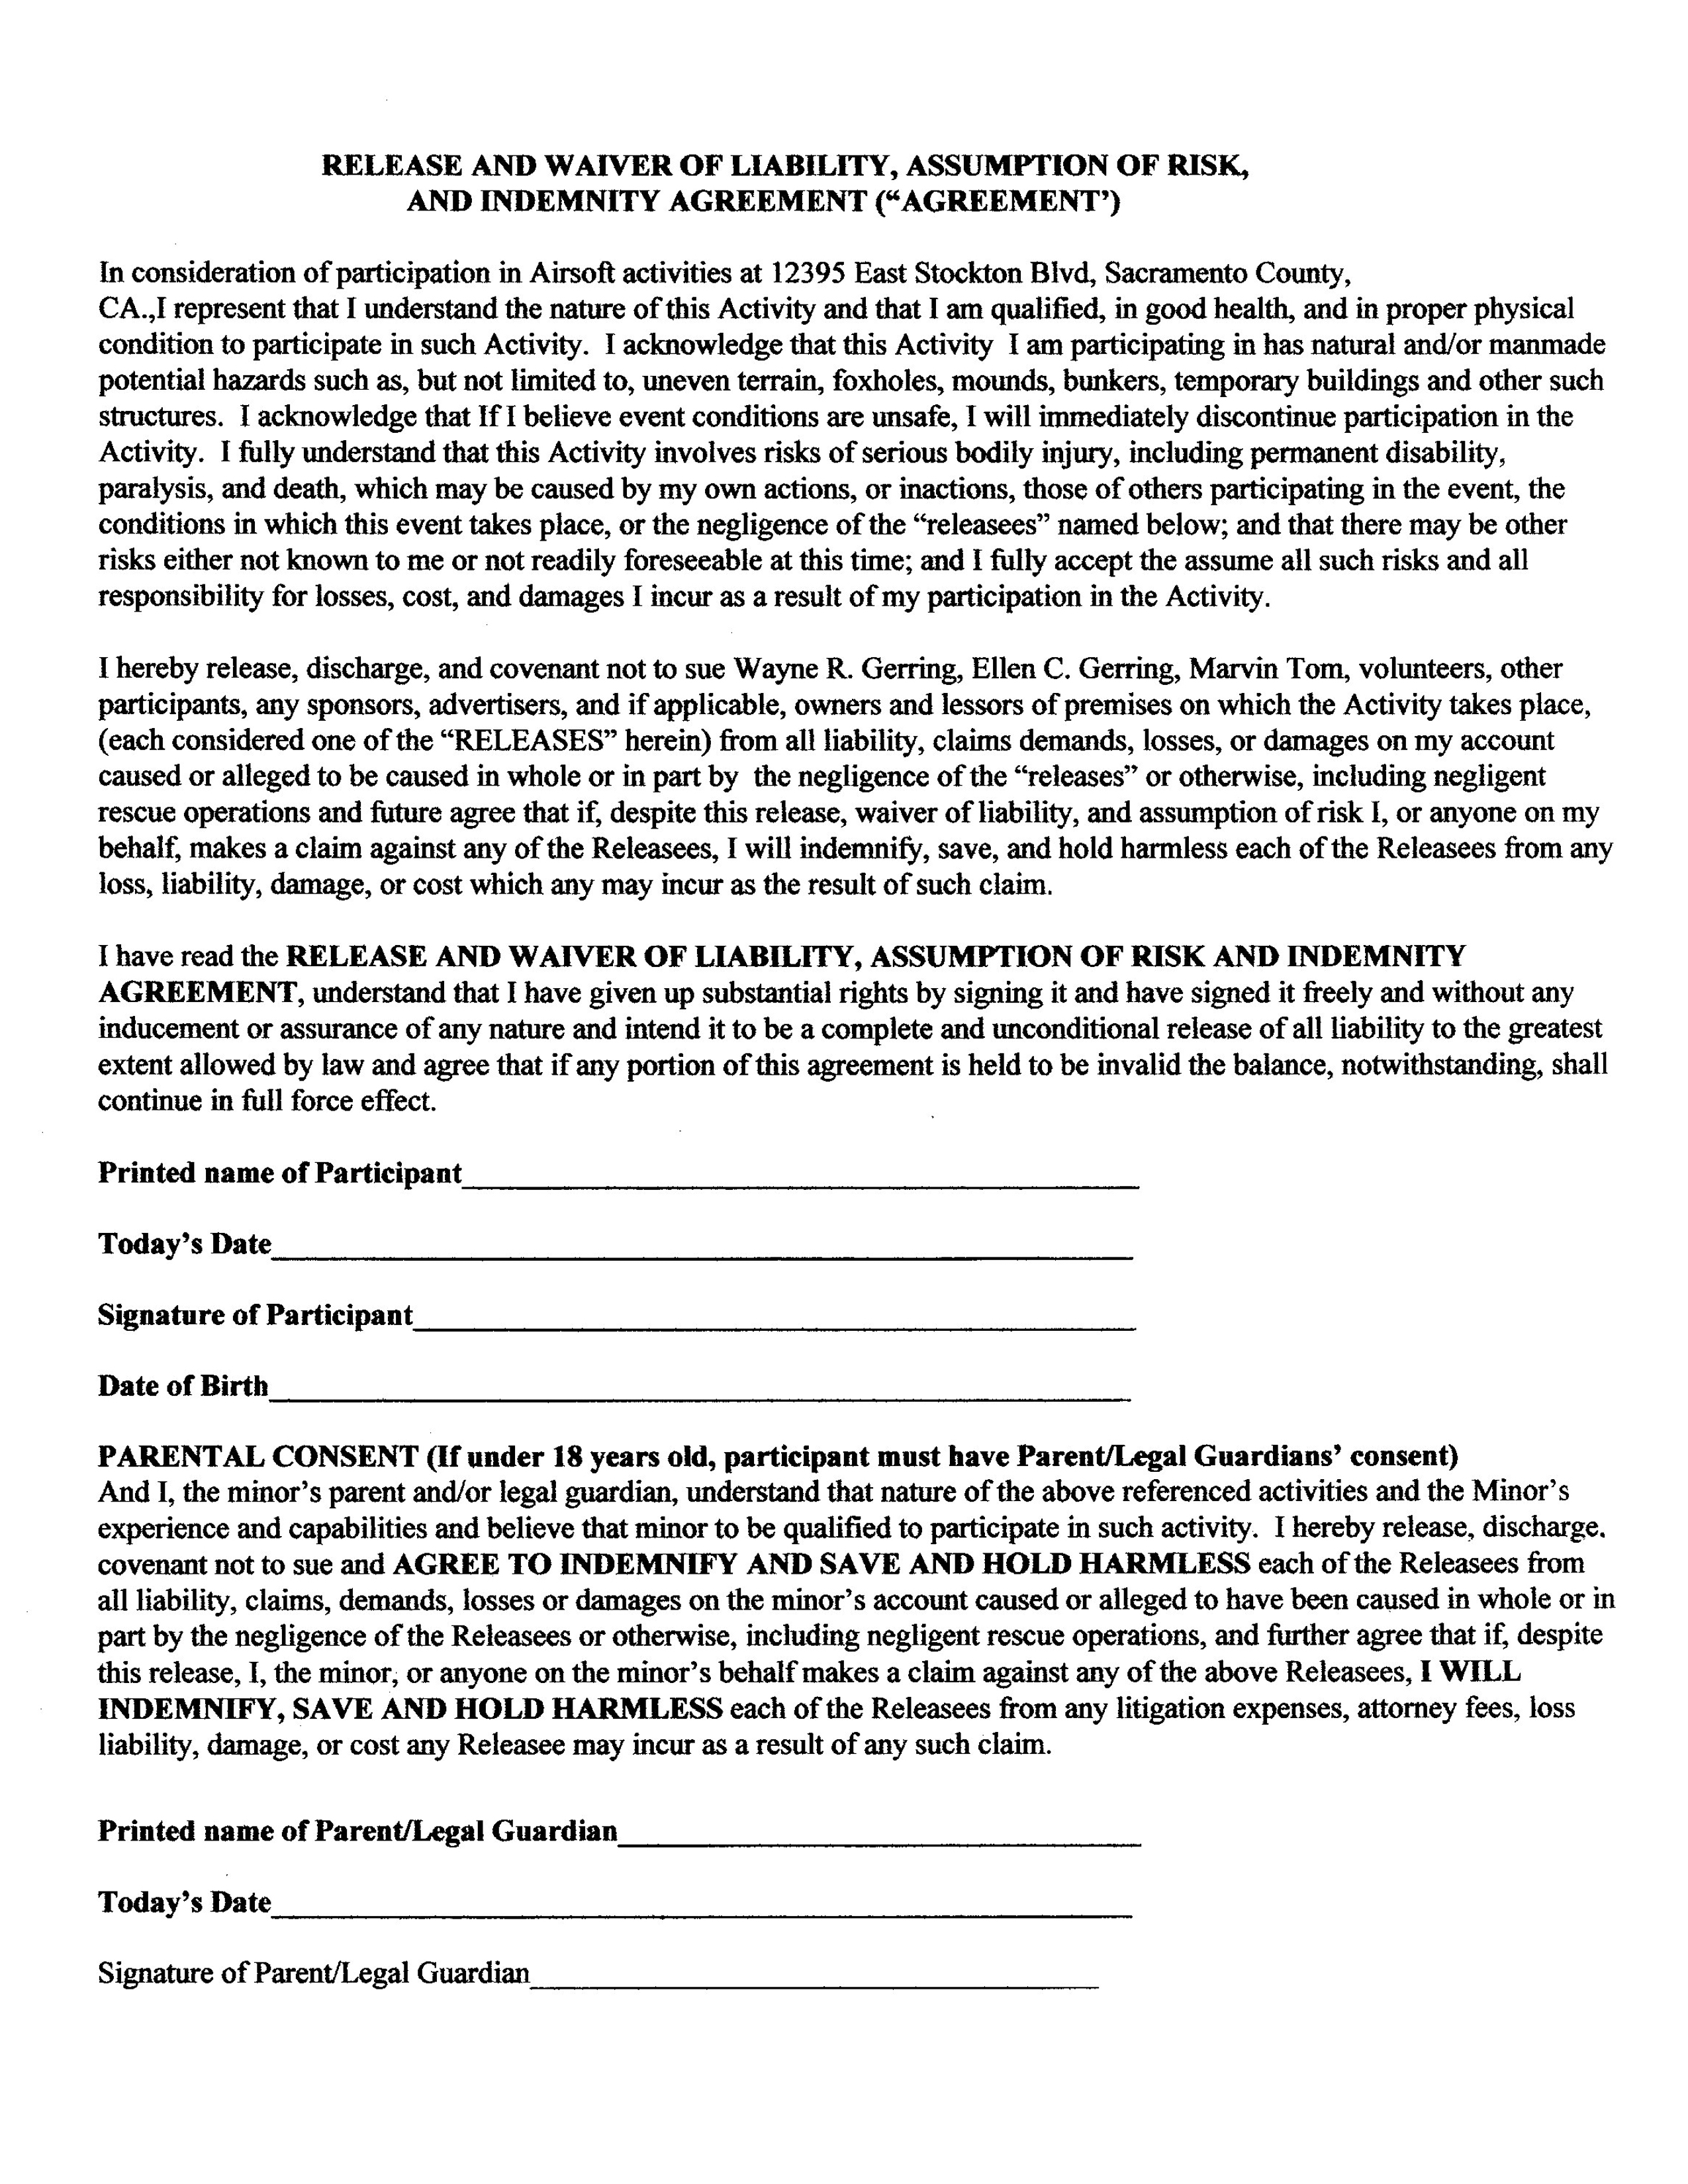 Liability waiver template free printable documents for Participation waiver template